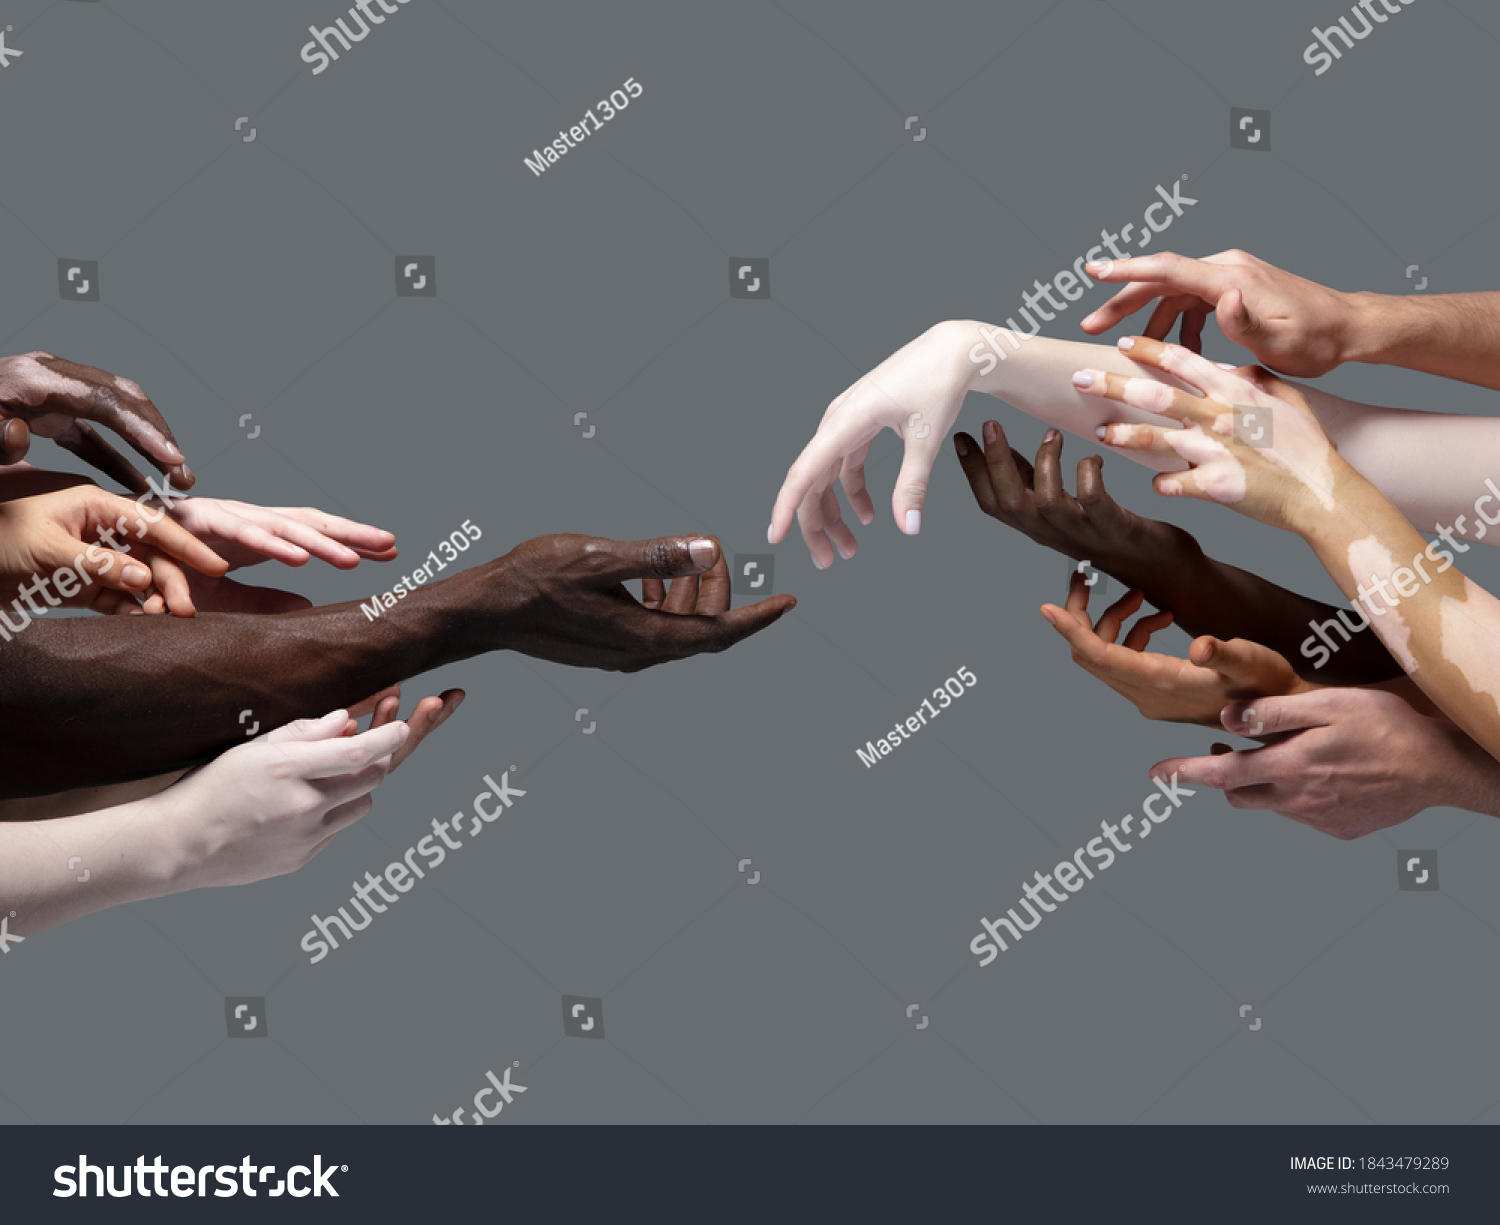 Creation of Adam. Hands of different people in touch isolated on grey studio background. Concept of relation, diversity, inclusion, community, togetherness. Weightless touching, creating one unit. #1843479289